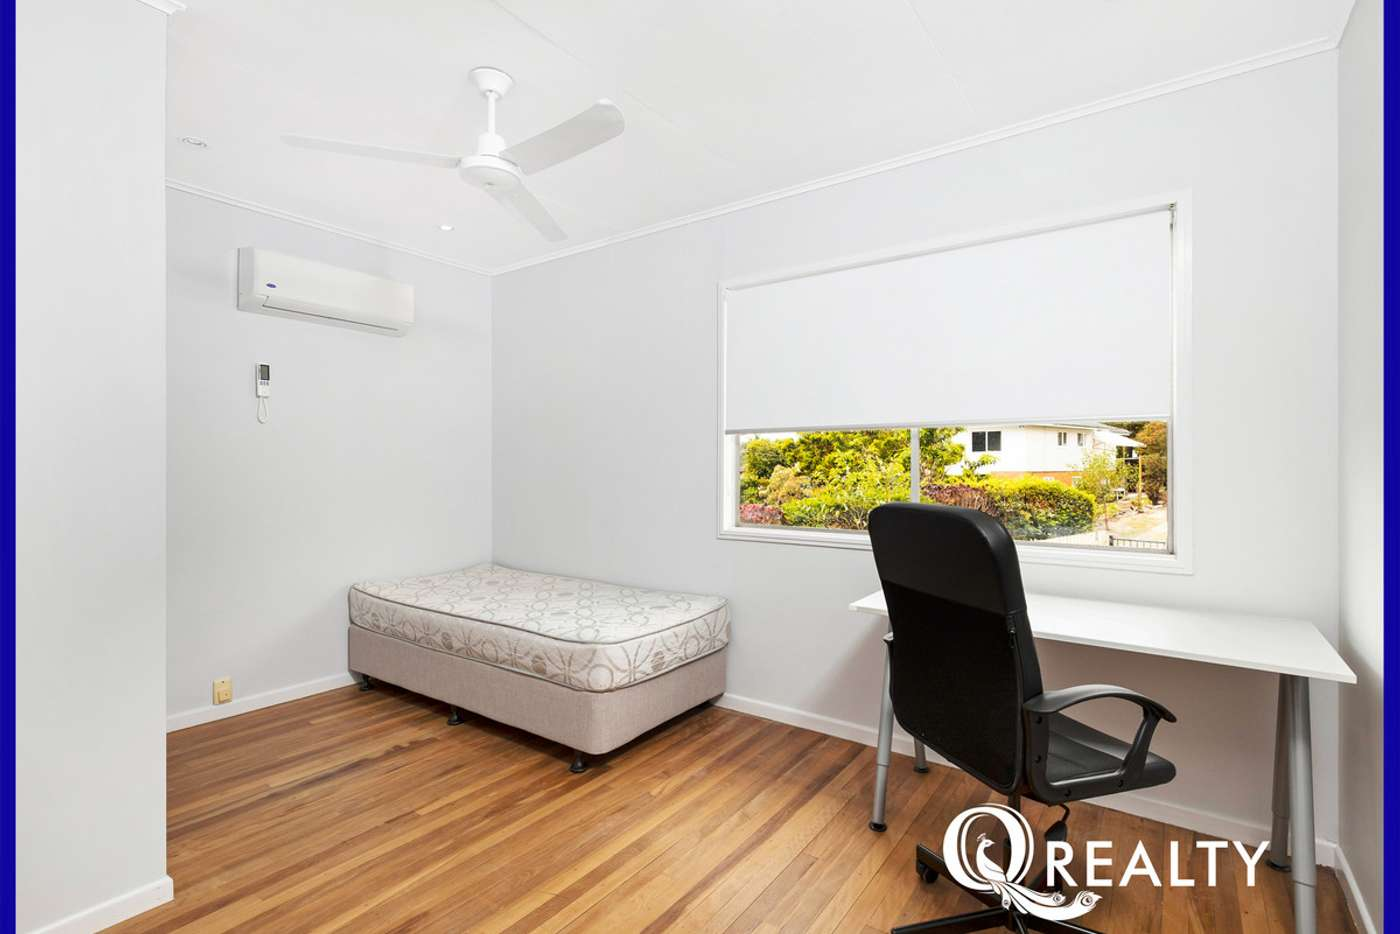 Seventh view of Homely house listing, 1 Coolgardie Street, Sunnybank Hills QLD 4109